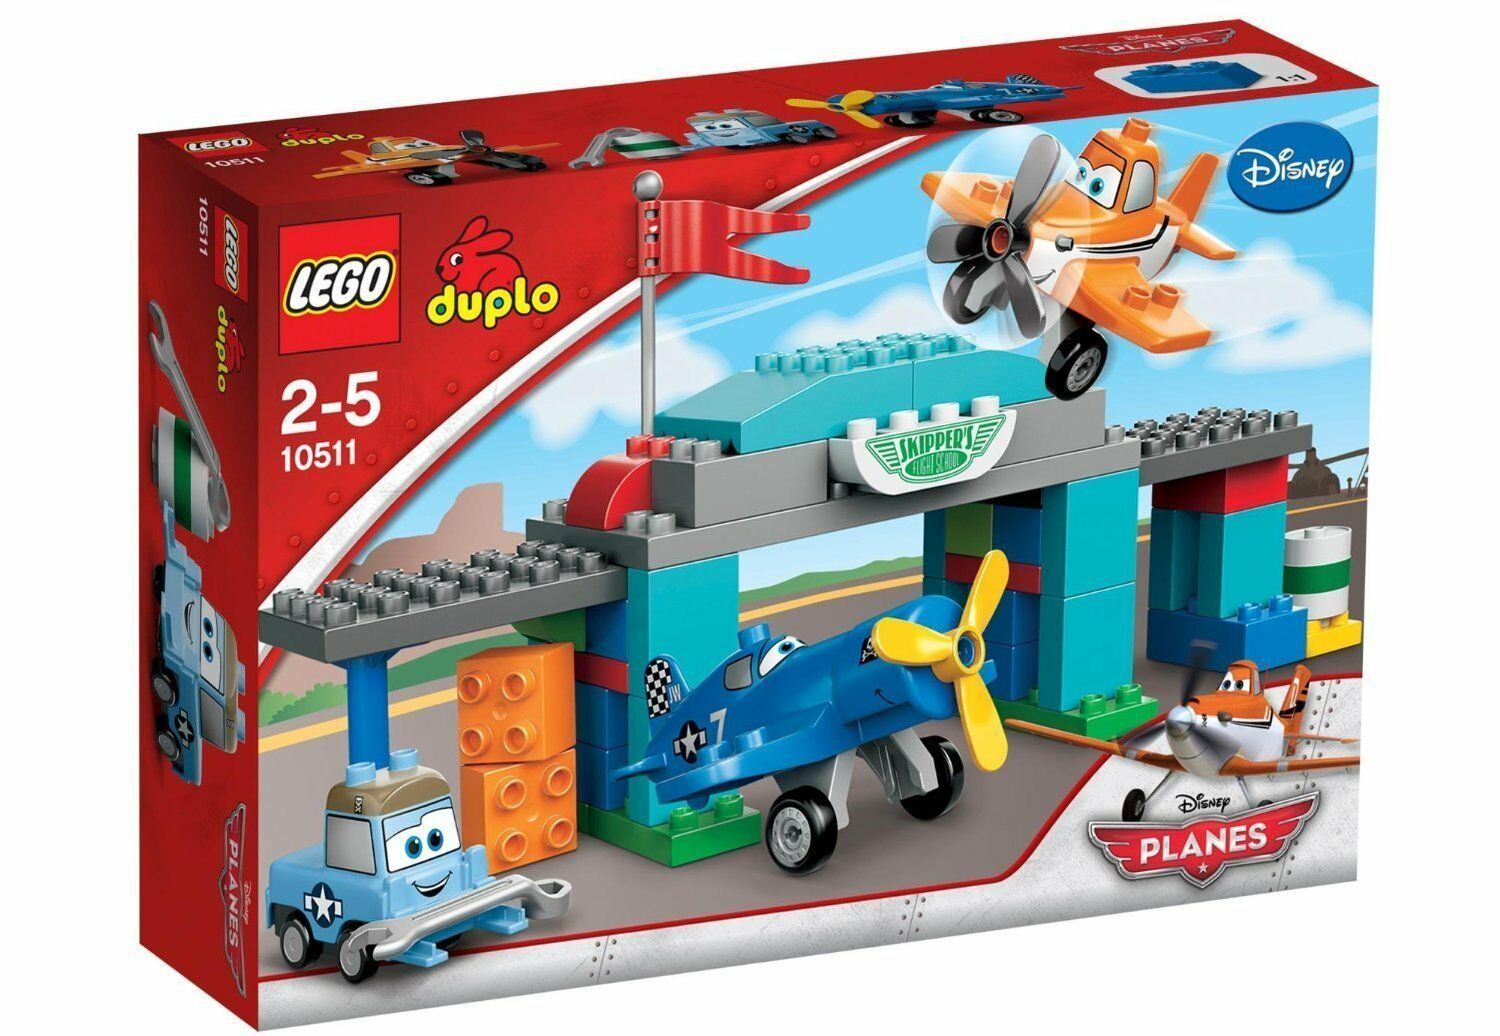 Lego Duplo 10511 Skipper Flying School New Ovp Misb